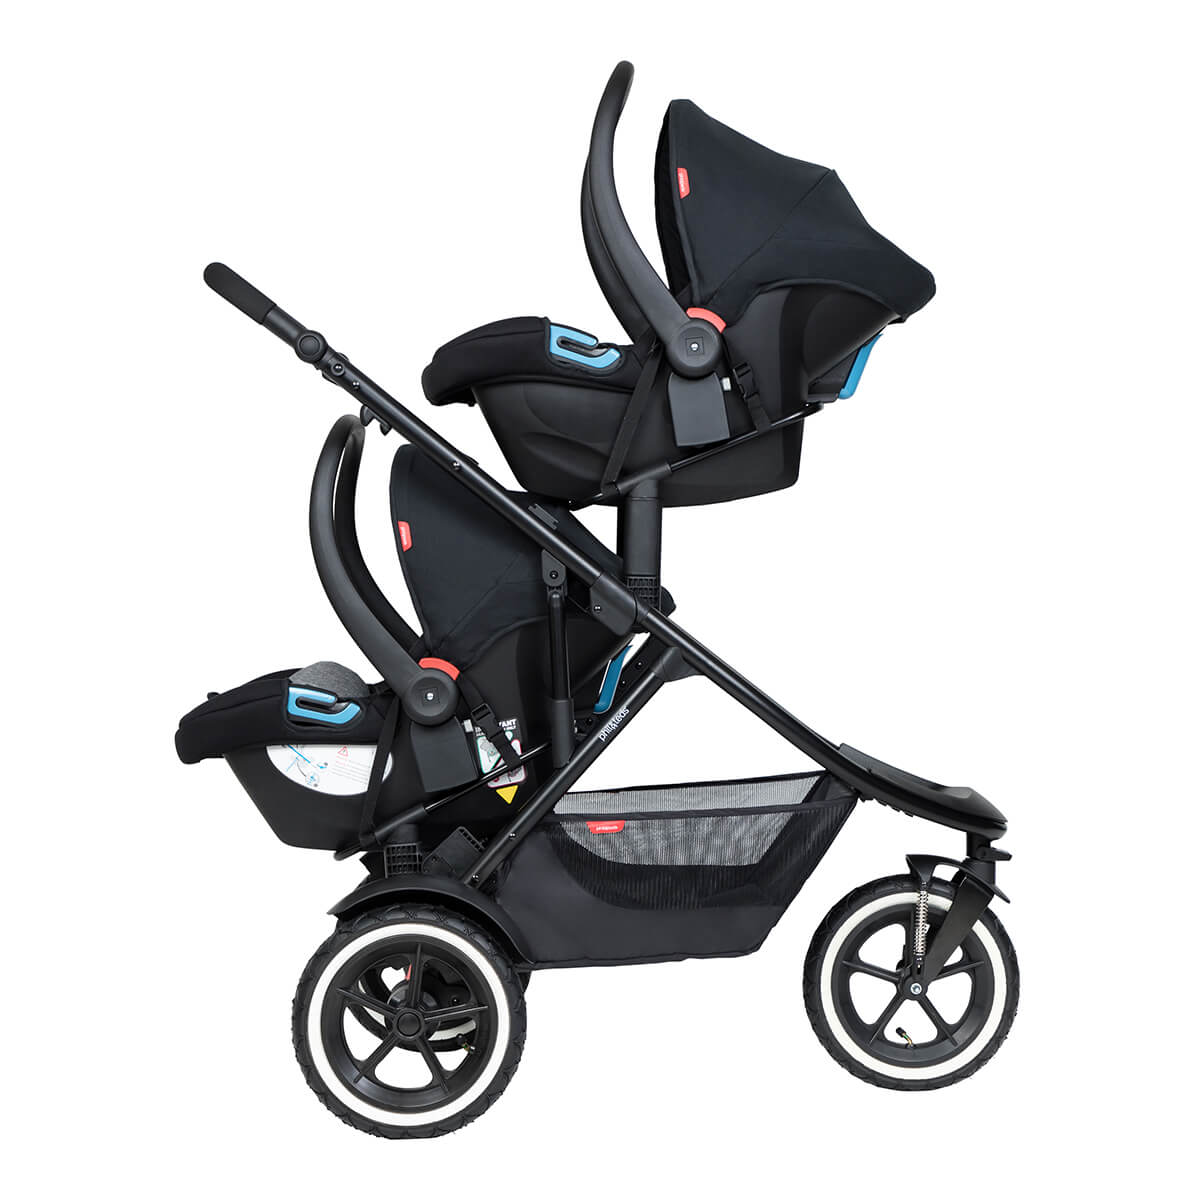 https://cdn.accentuate.io/4546157248617/19119322923113/philteds-sport-buggy-with-double-alpha-travel-system-v1626484907929.jpg?1200x1200